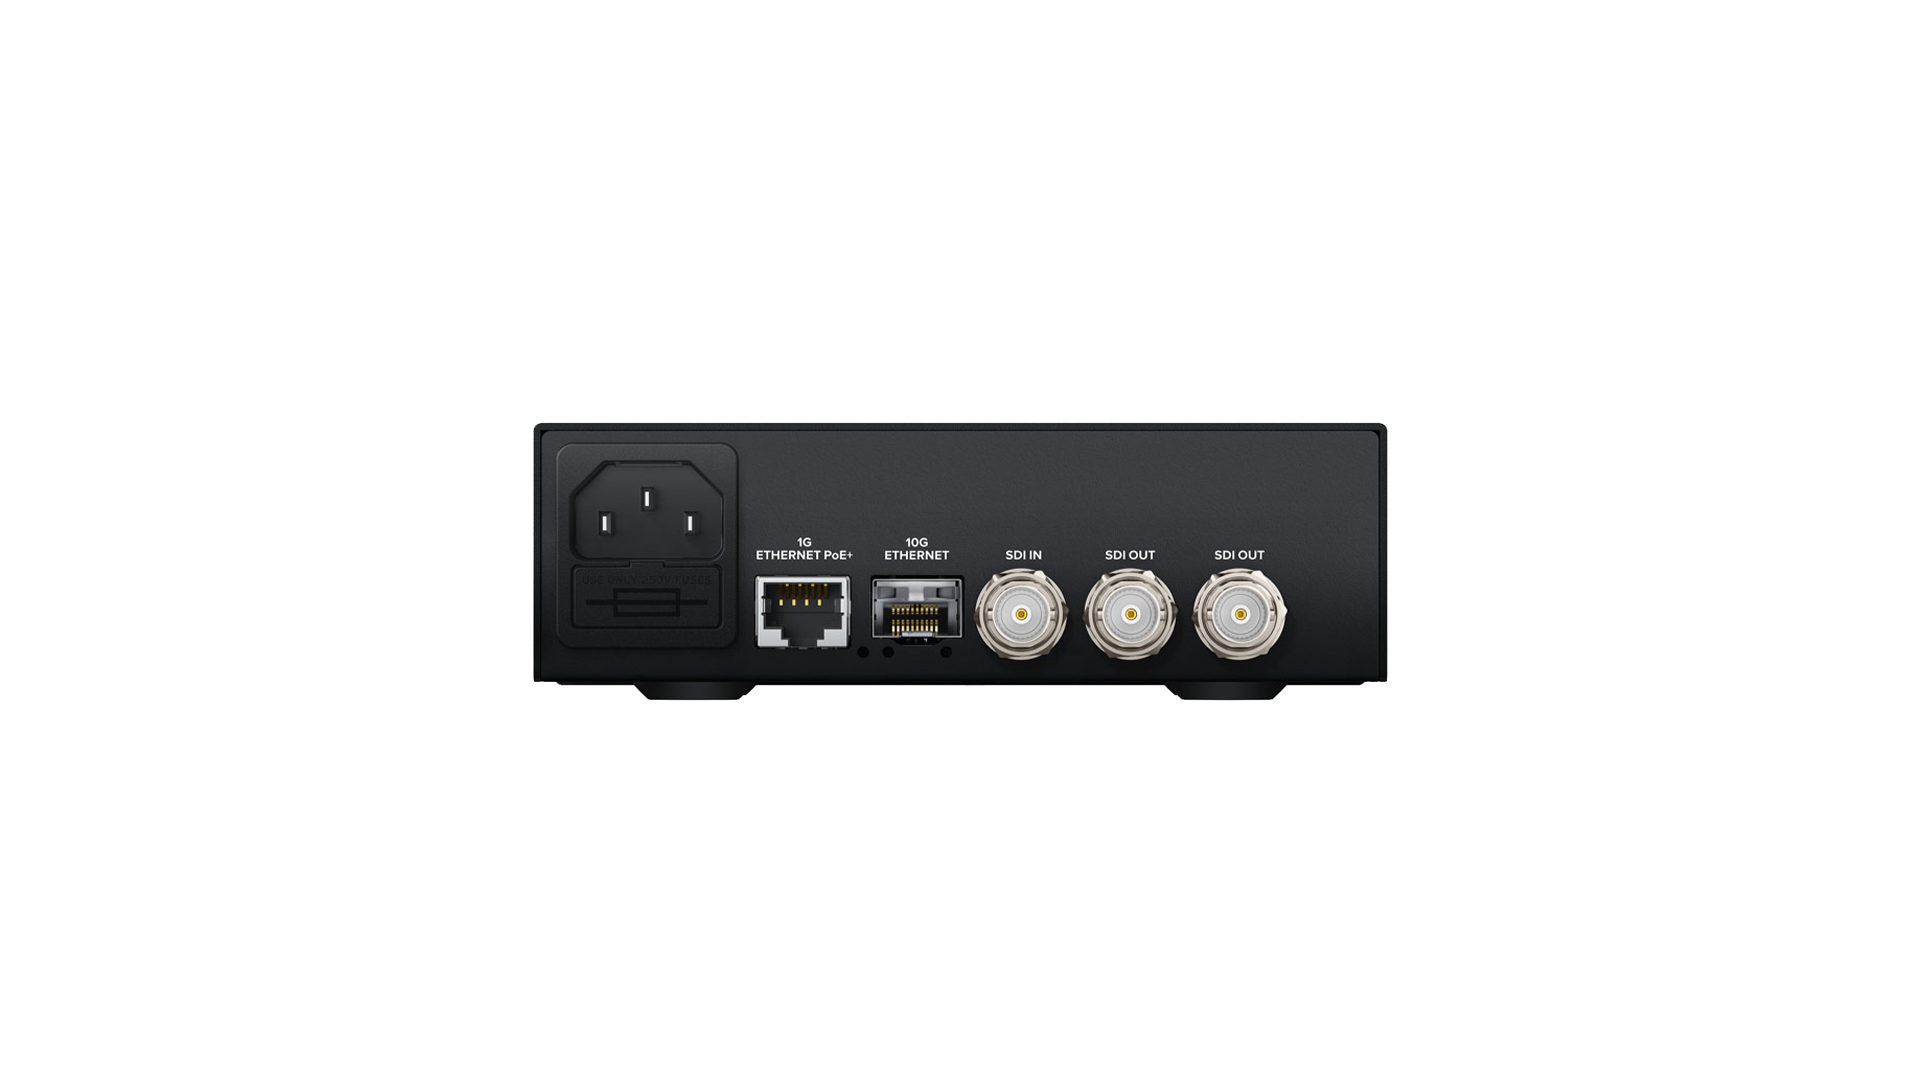 Blackmagic CONVNTRM/OB/IPV | Teranex Mini IP Video 12G | Convertitori | Distributori